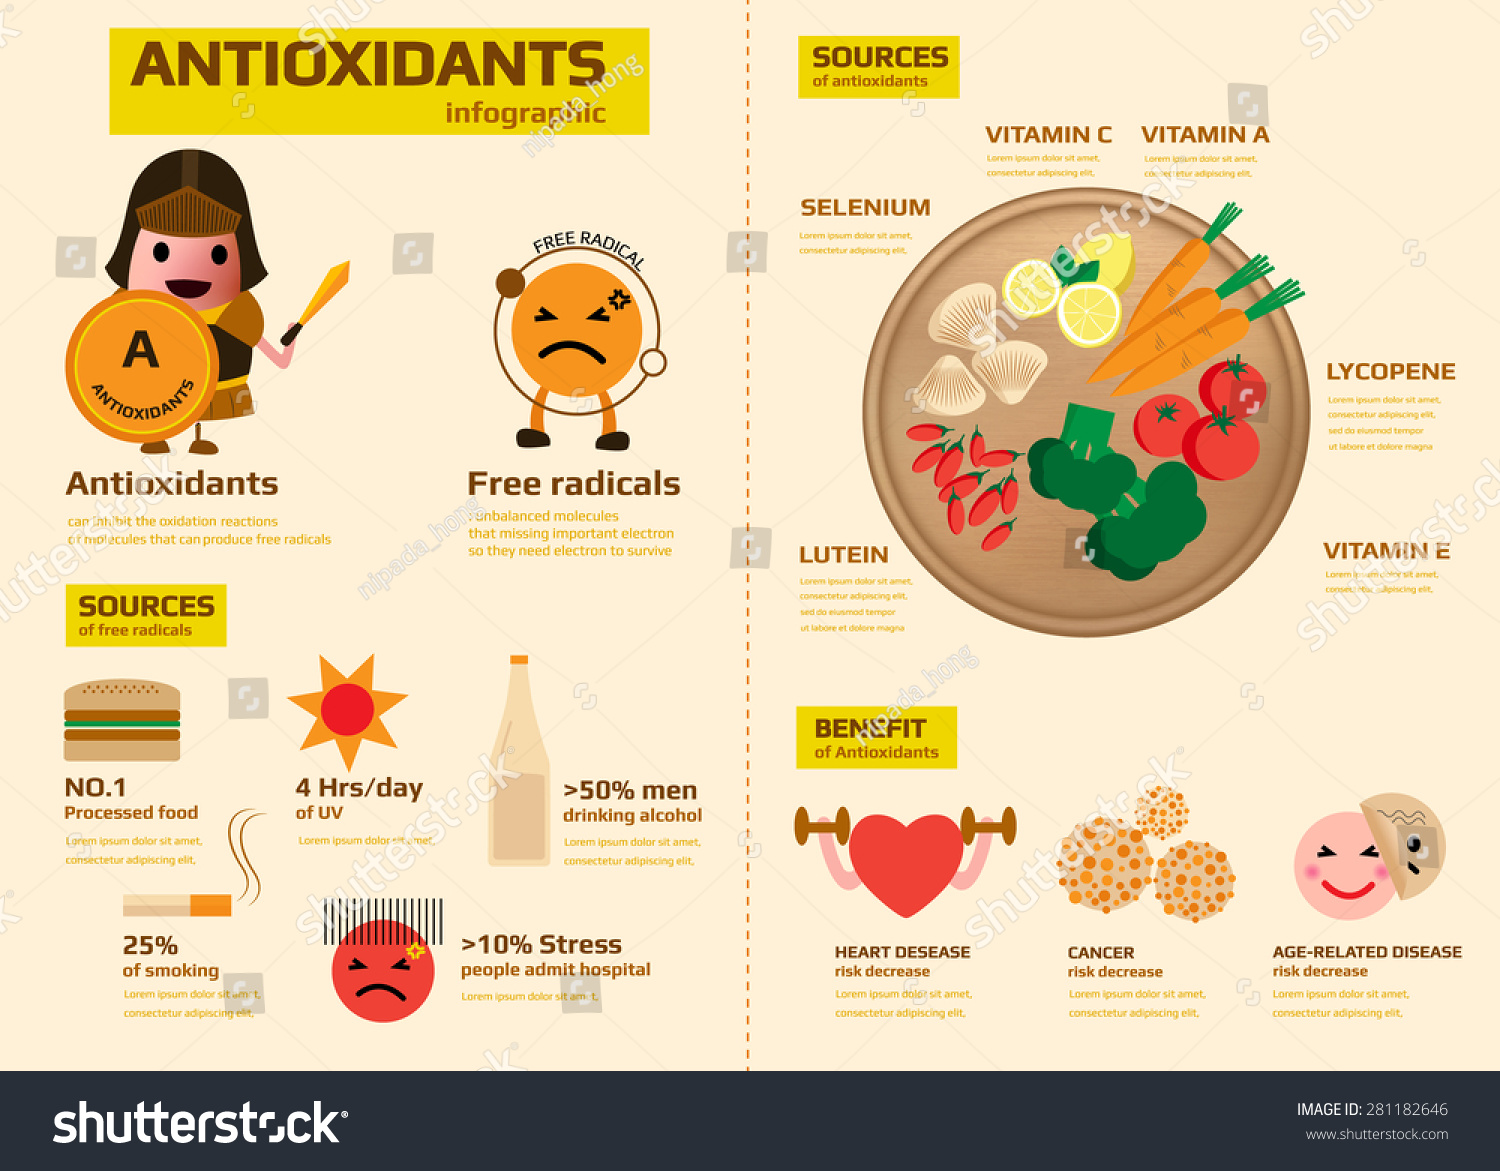 Antioxidants Infographic Contain Sources Free Radical Stock Vector 281182646 - Shutterstock